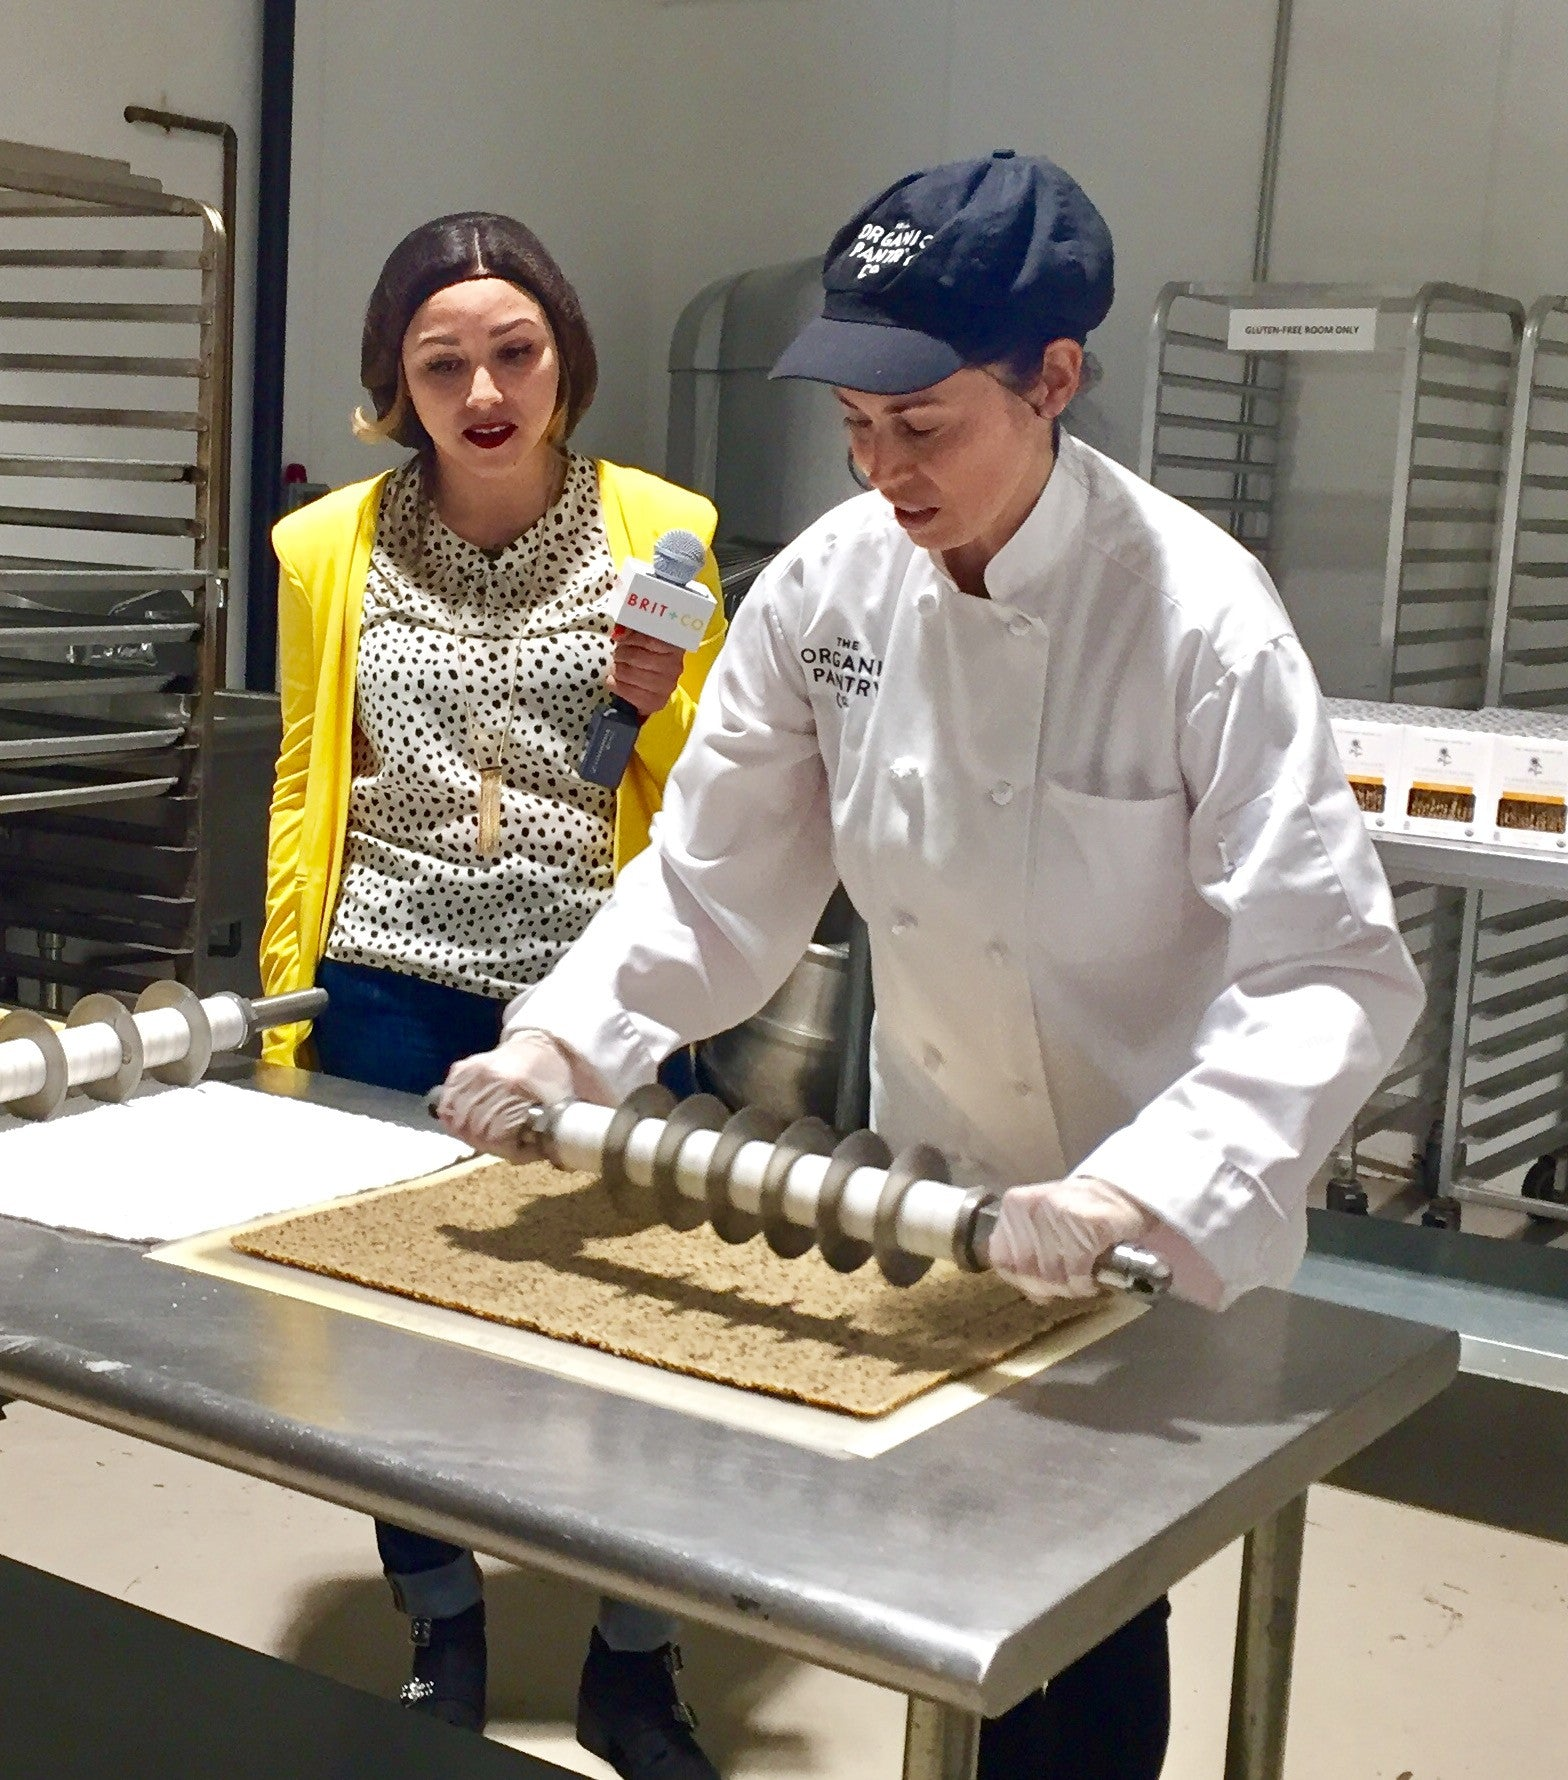 Brit & Co interview Founder Theresa Petry at KitchenTown Central